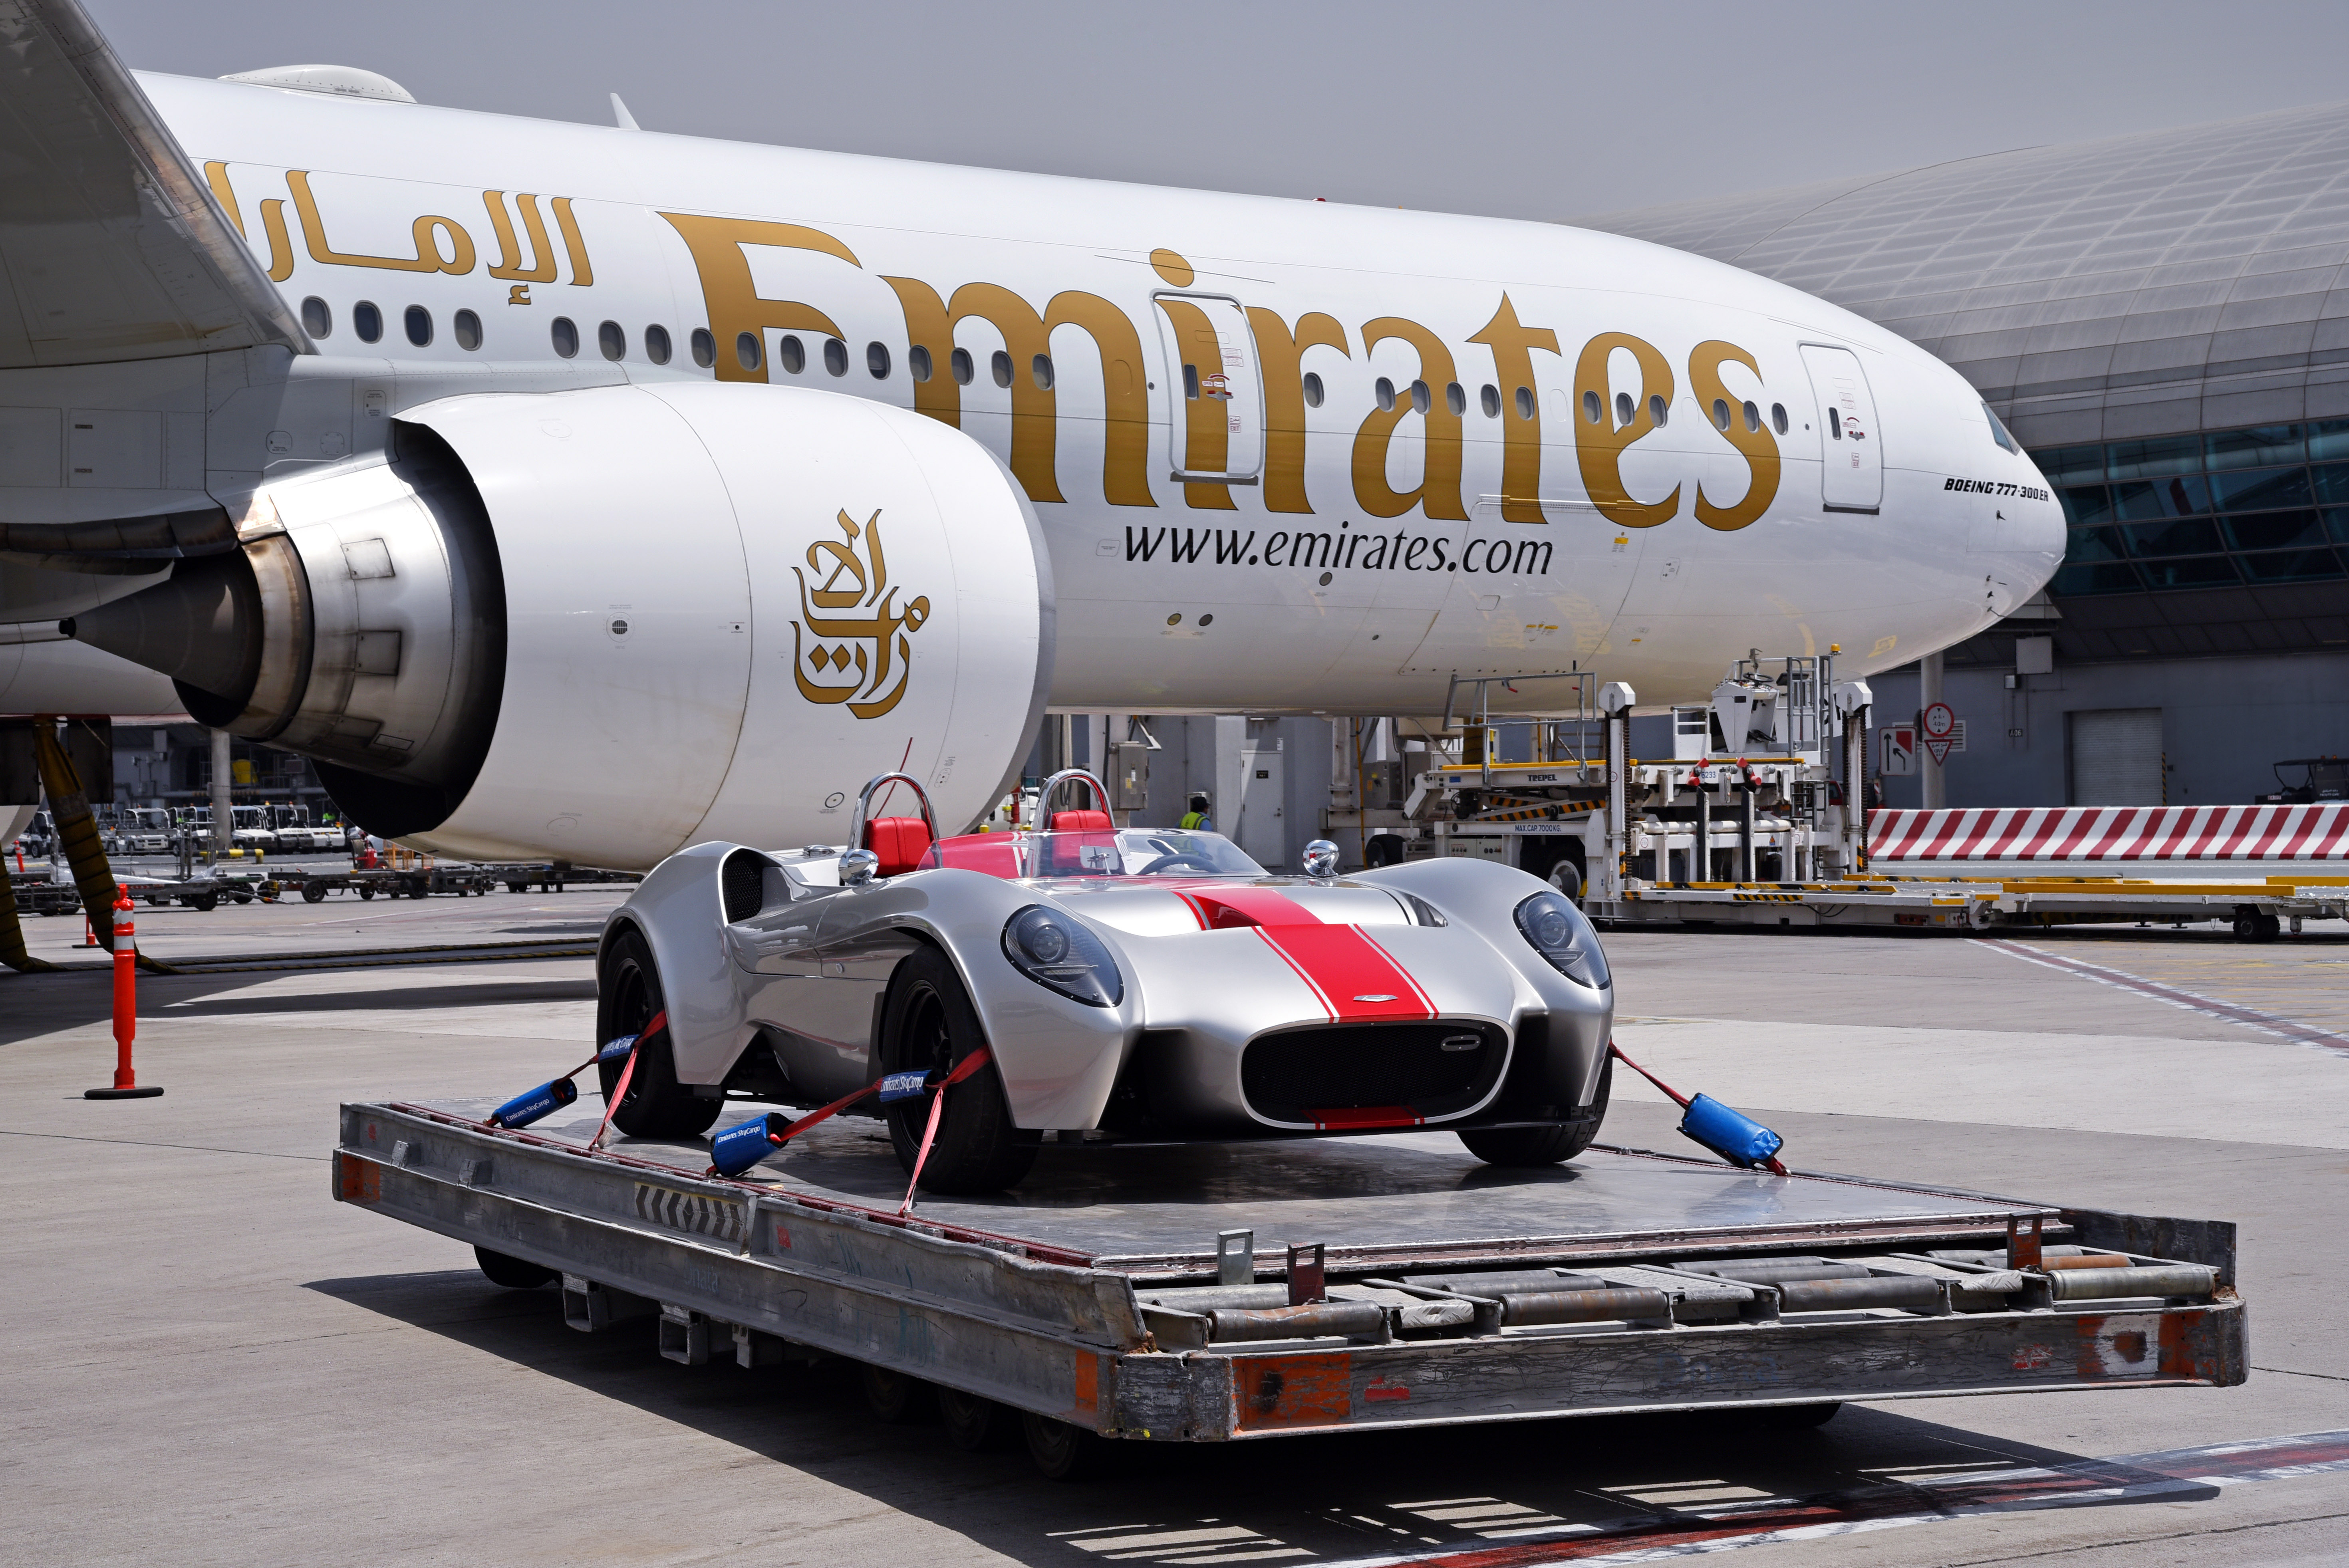 وكالة أنباء الإمارات - First car entirely made in UAE sent to France